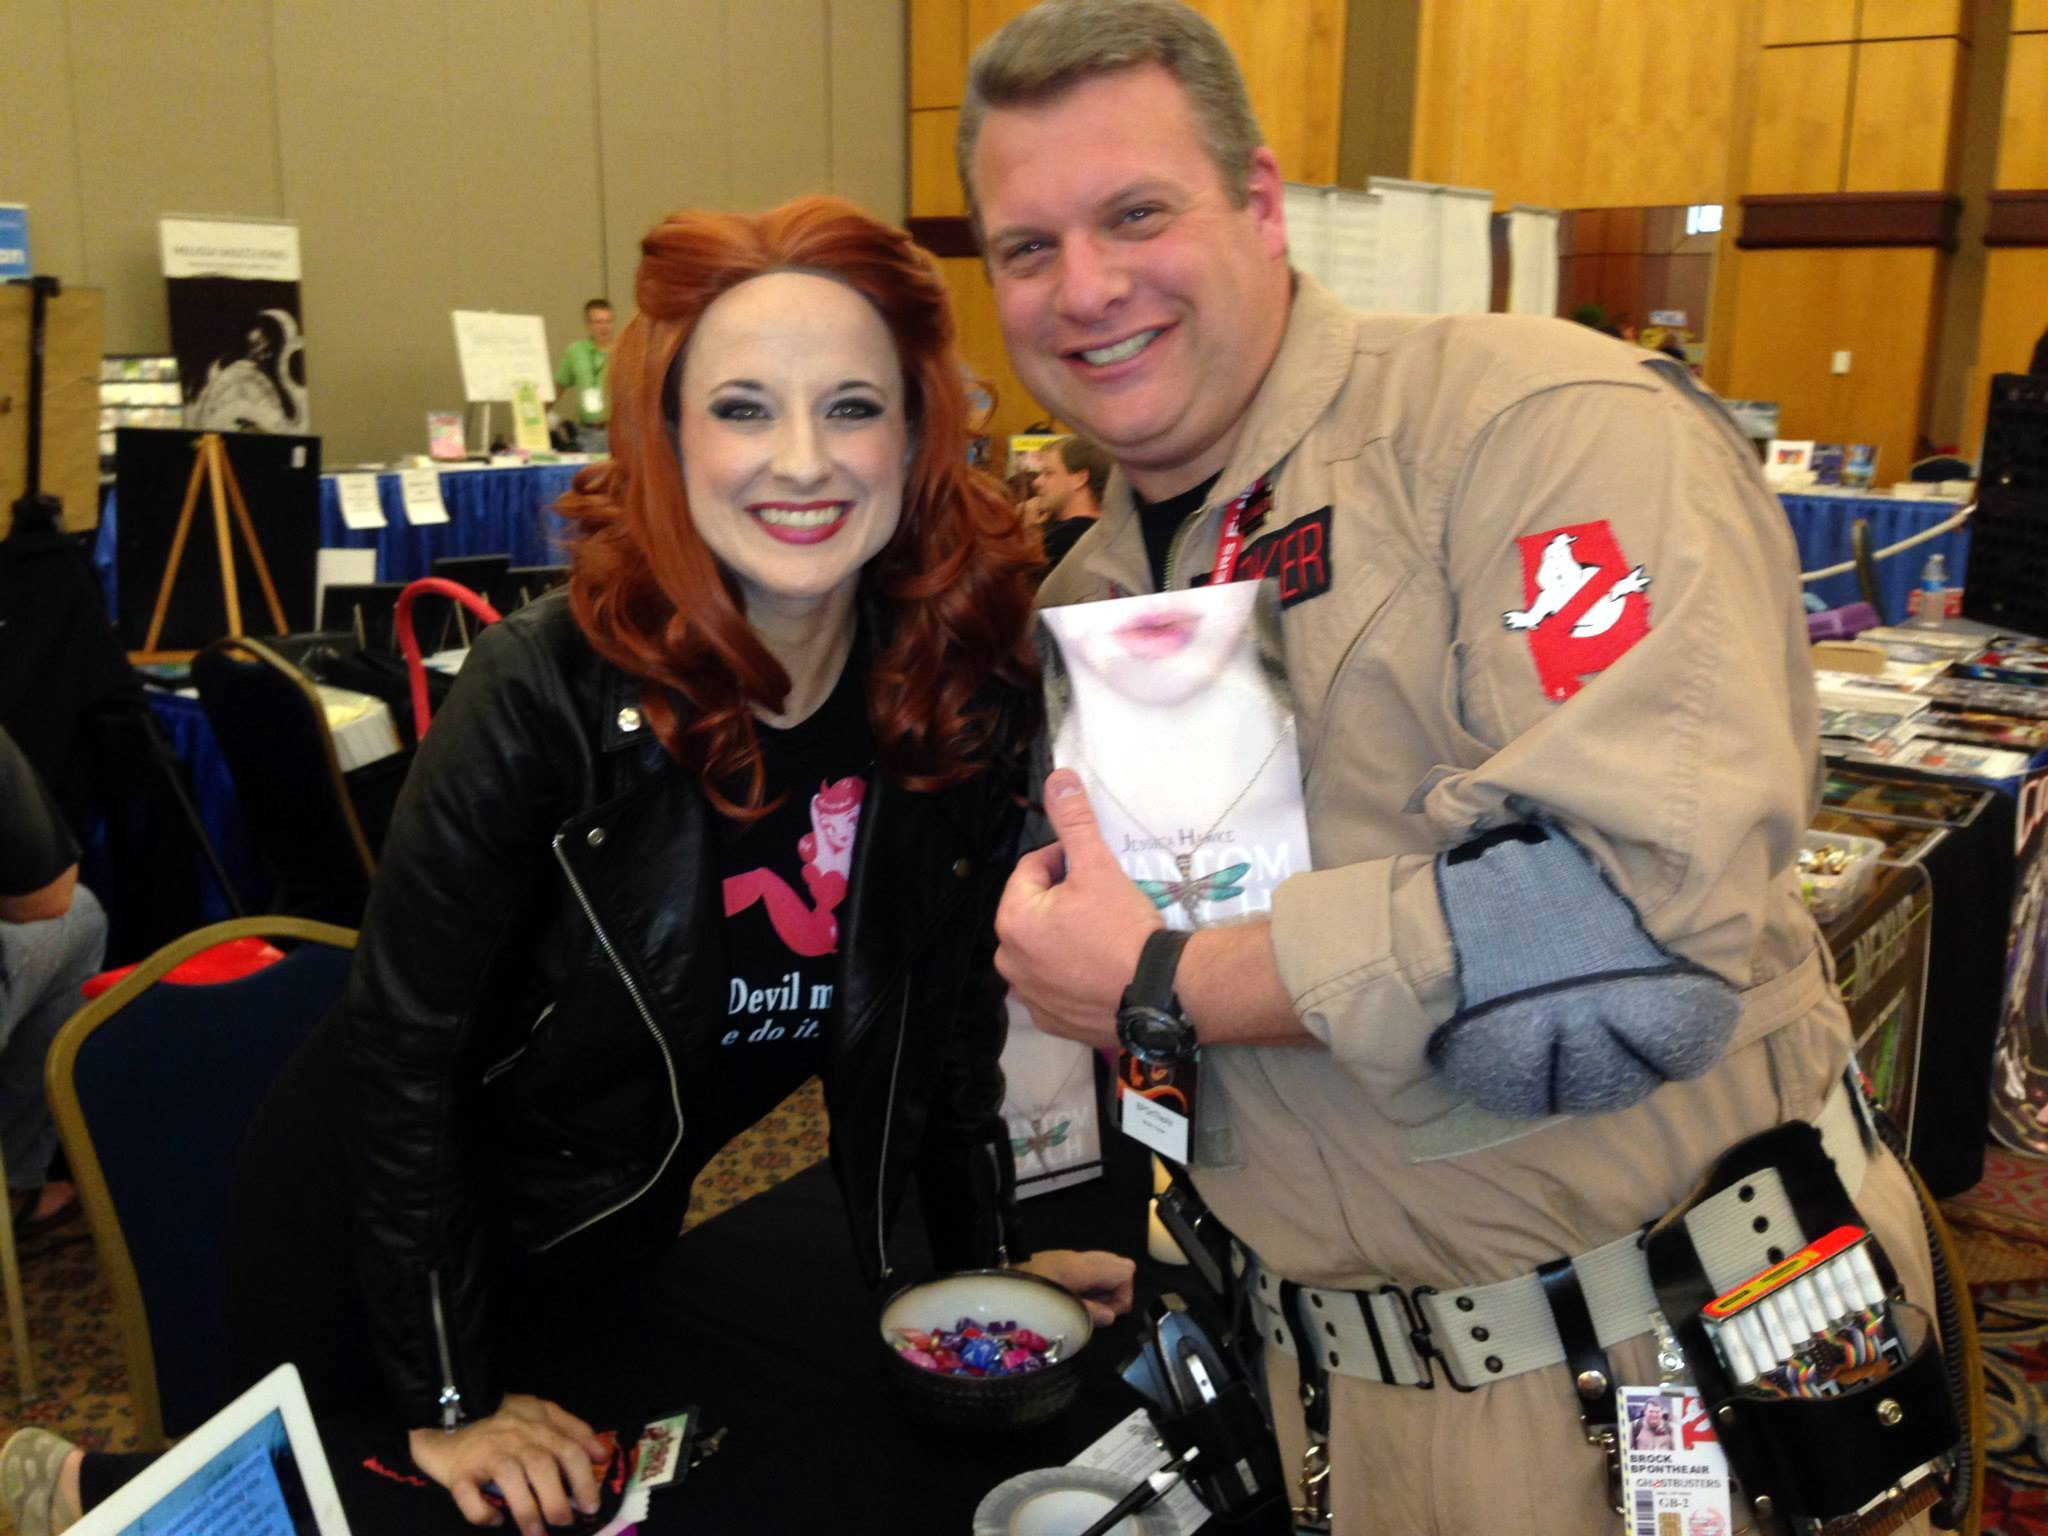 Have no fear - when there's something strange in the neighborhood, there's a friendly neighborhood Ghostbuster around! I attended the Alabama Phoenix Festival as a guest author! SO MUCH FUN!